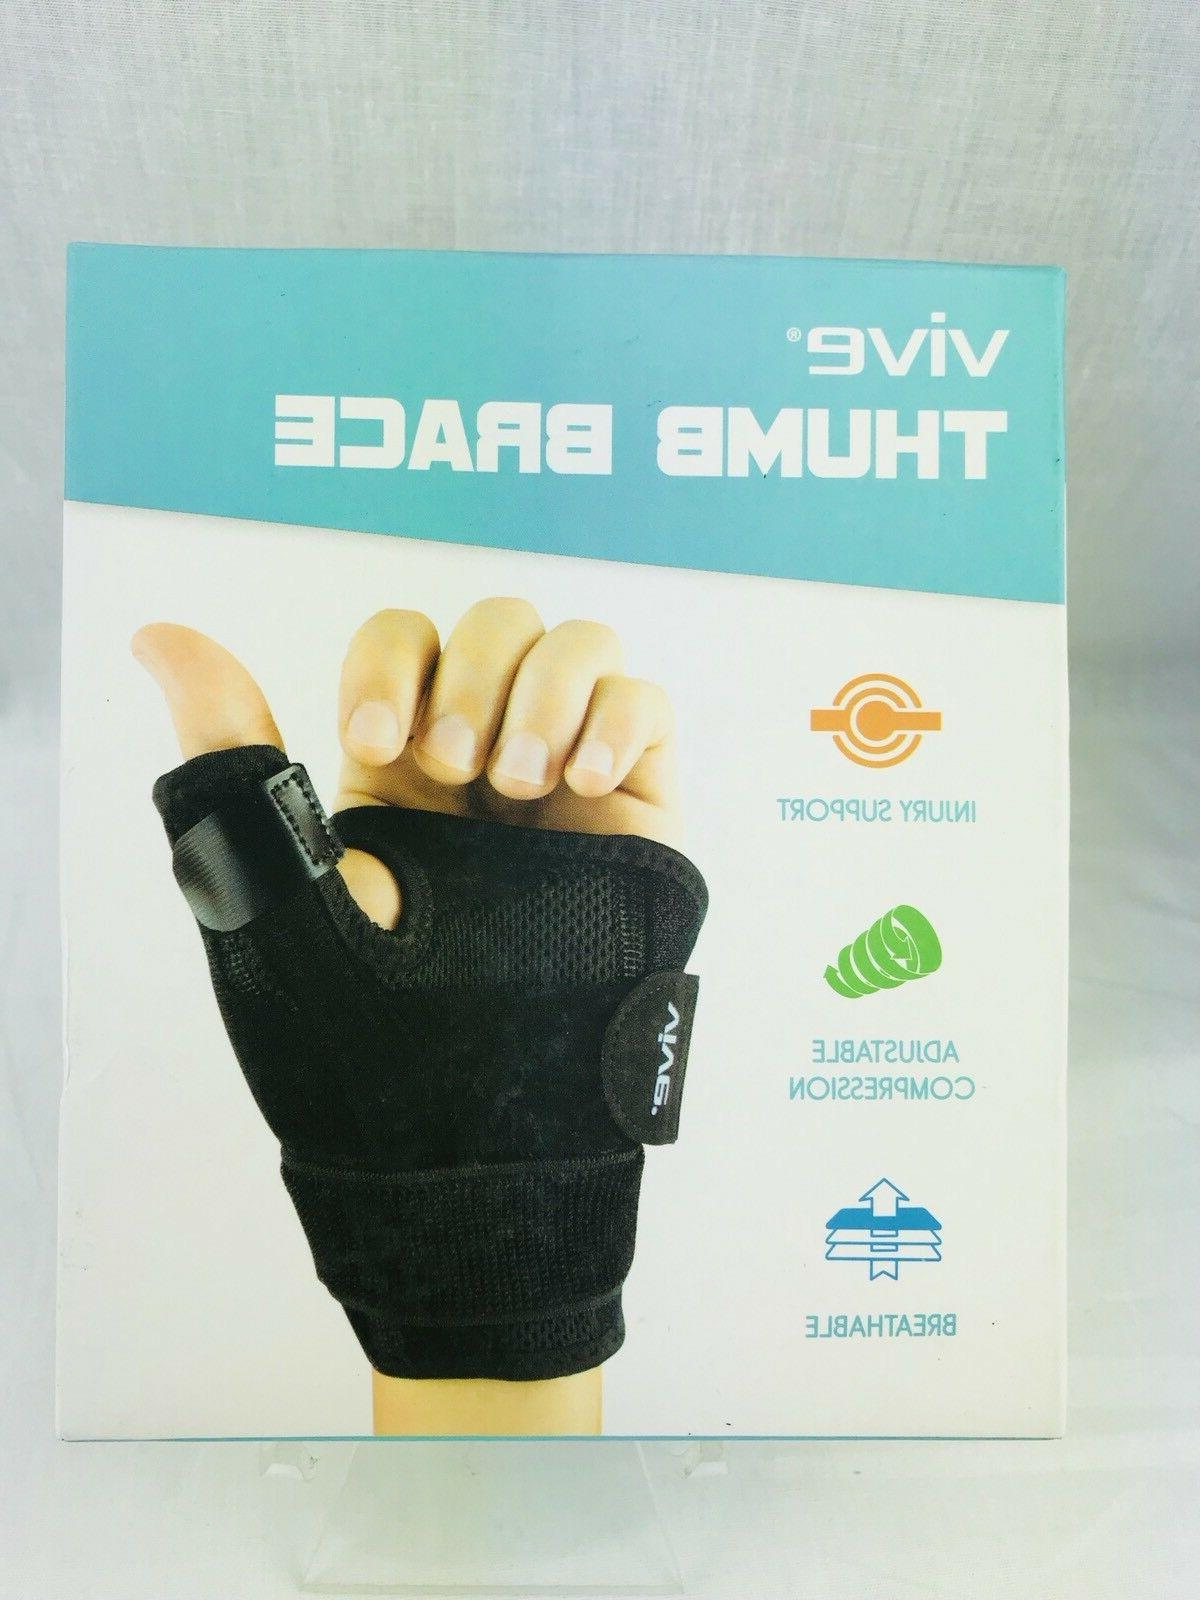 Arthritis Thumb Splint for Pain